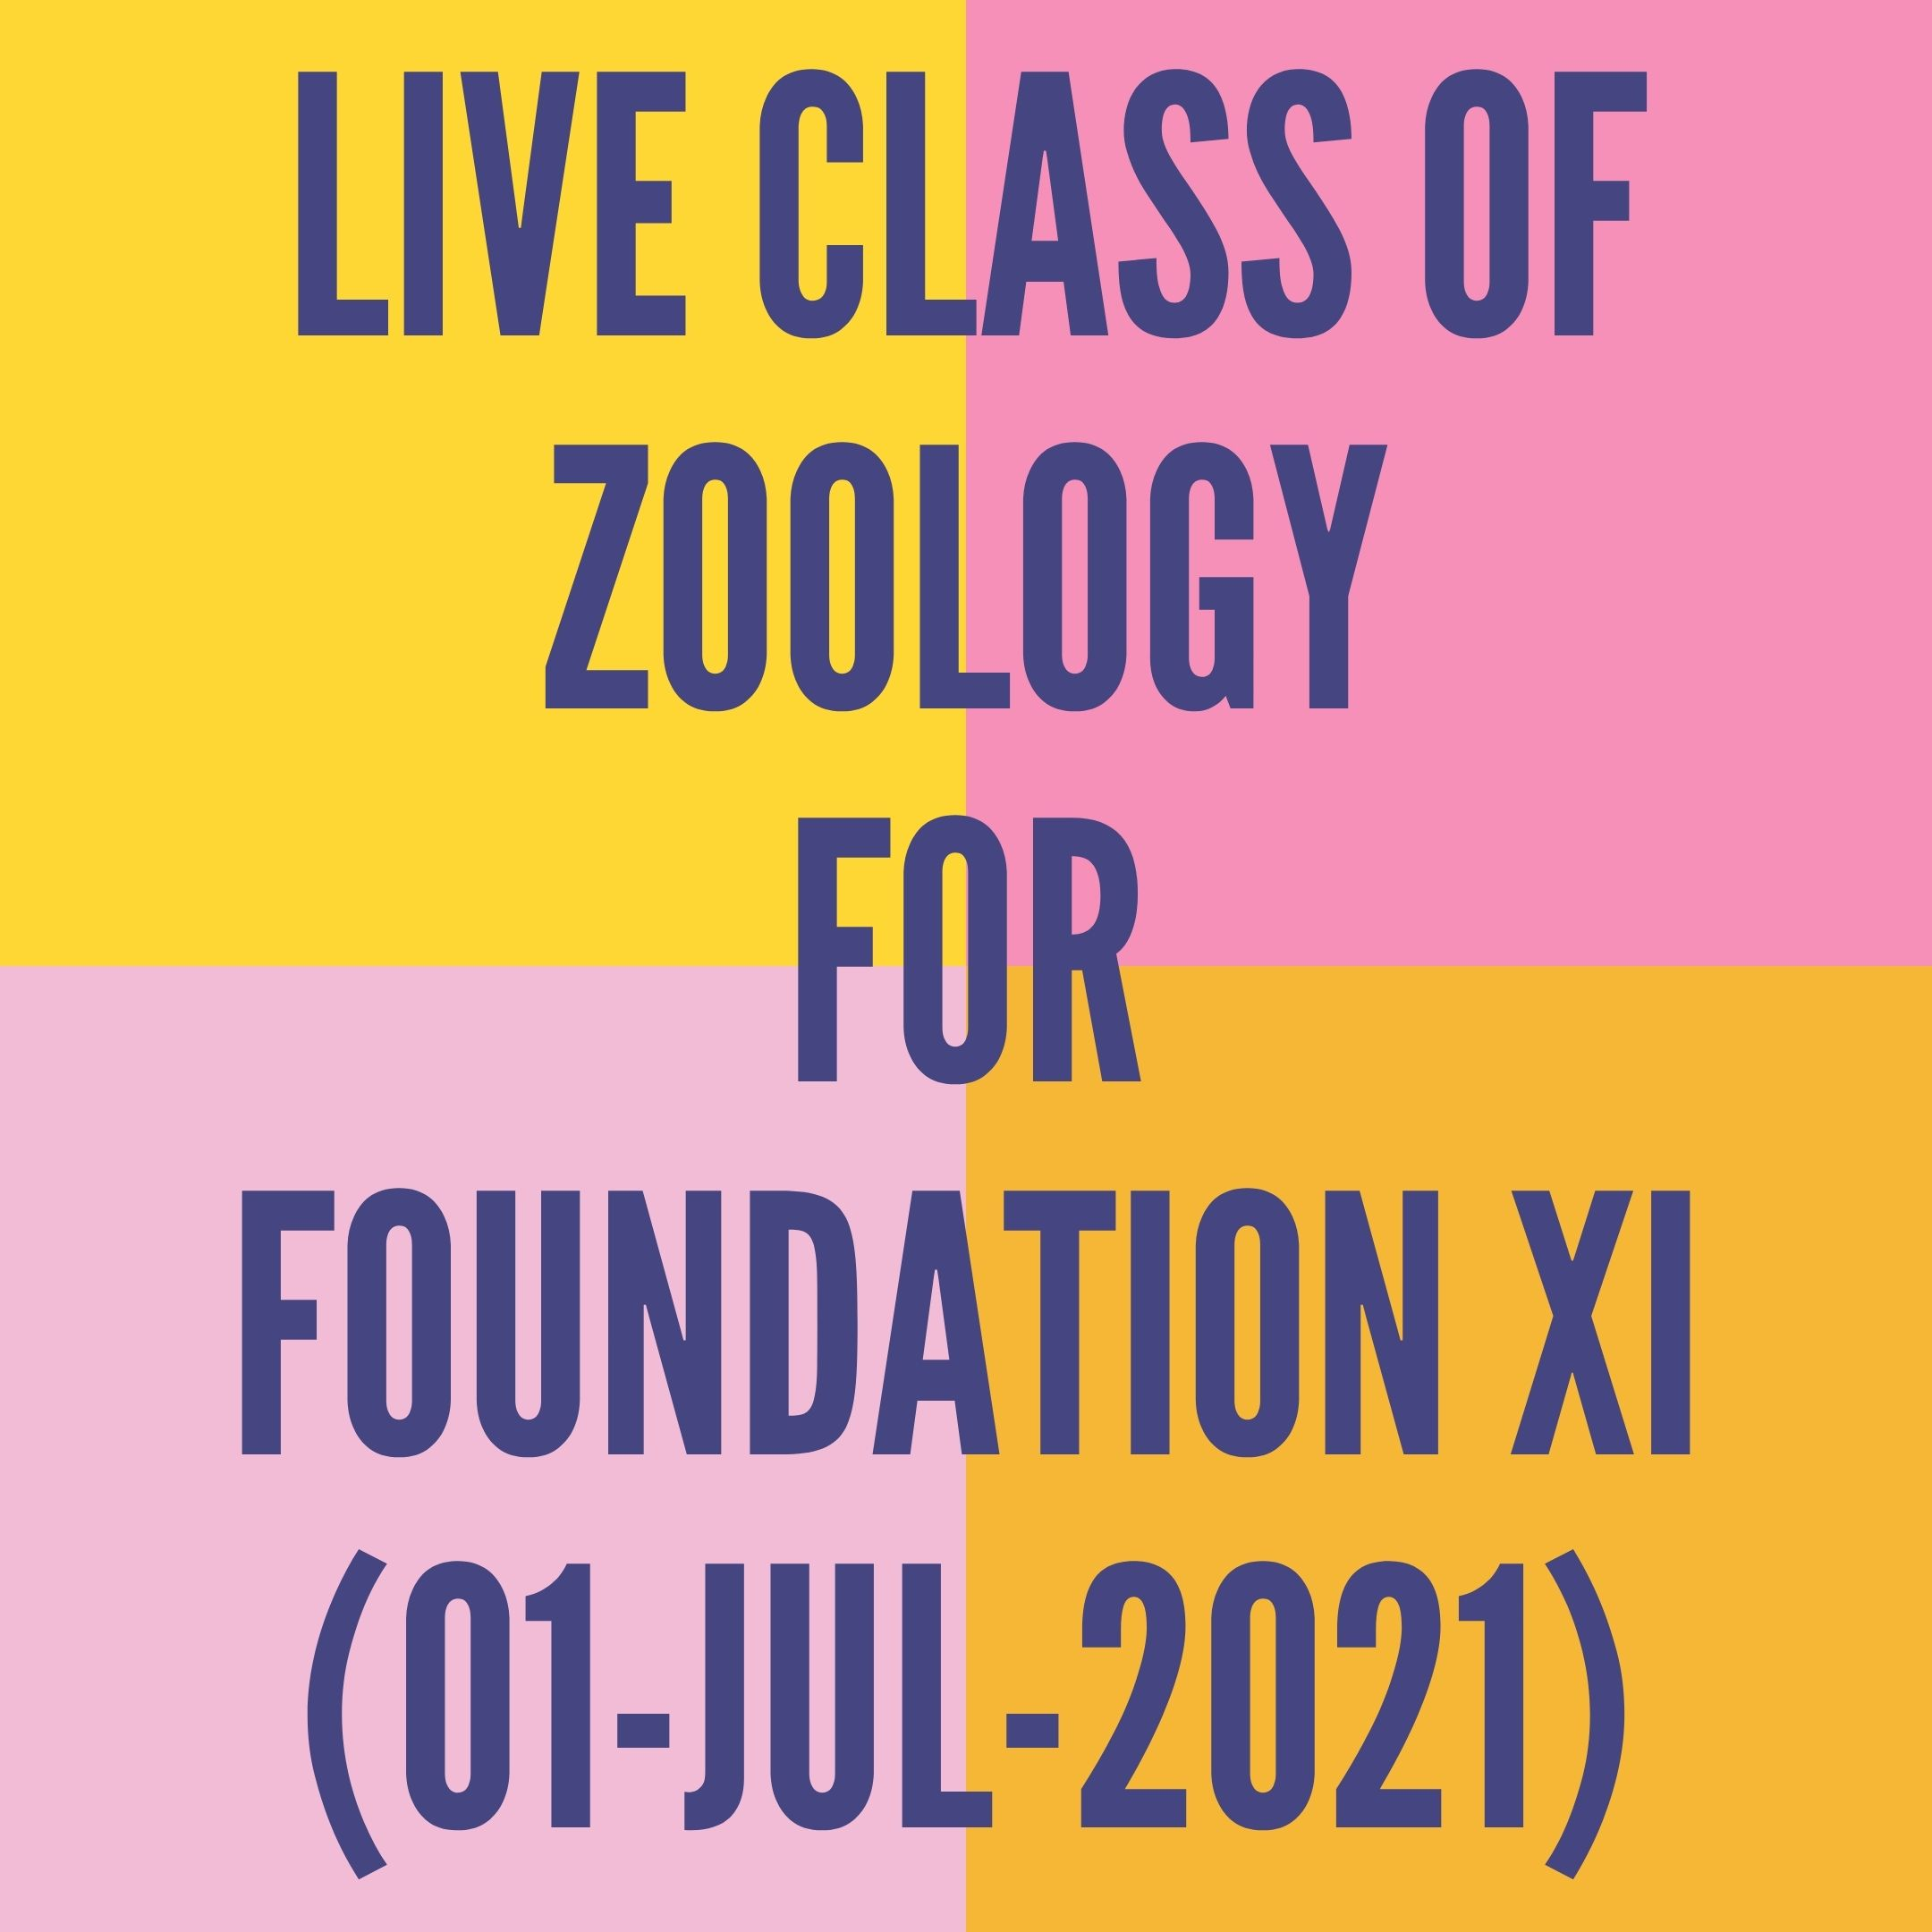 LIVE CLASS OF ZOOLOGY FOR FOUNDATION XI (01-JUL-2021) DIGESTIVE SYSTEM